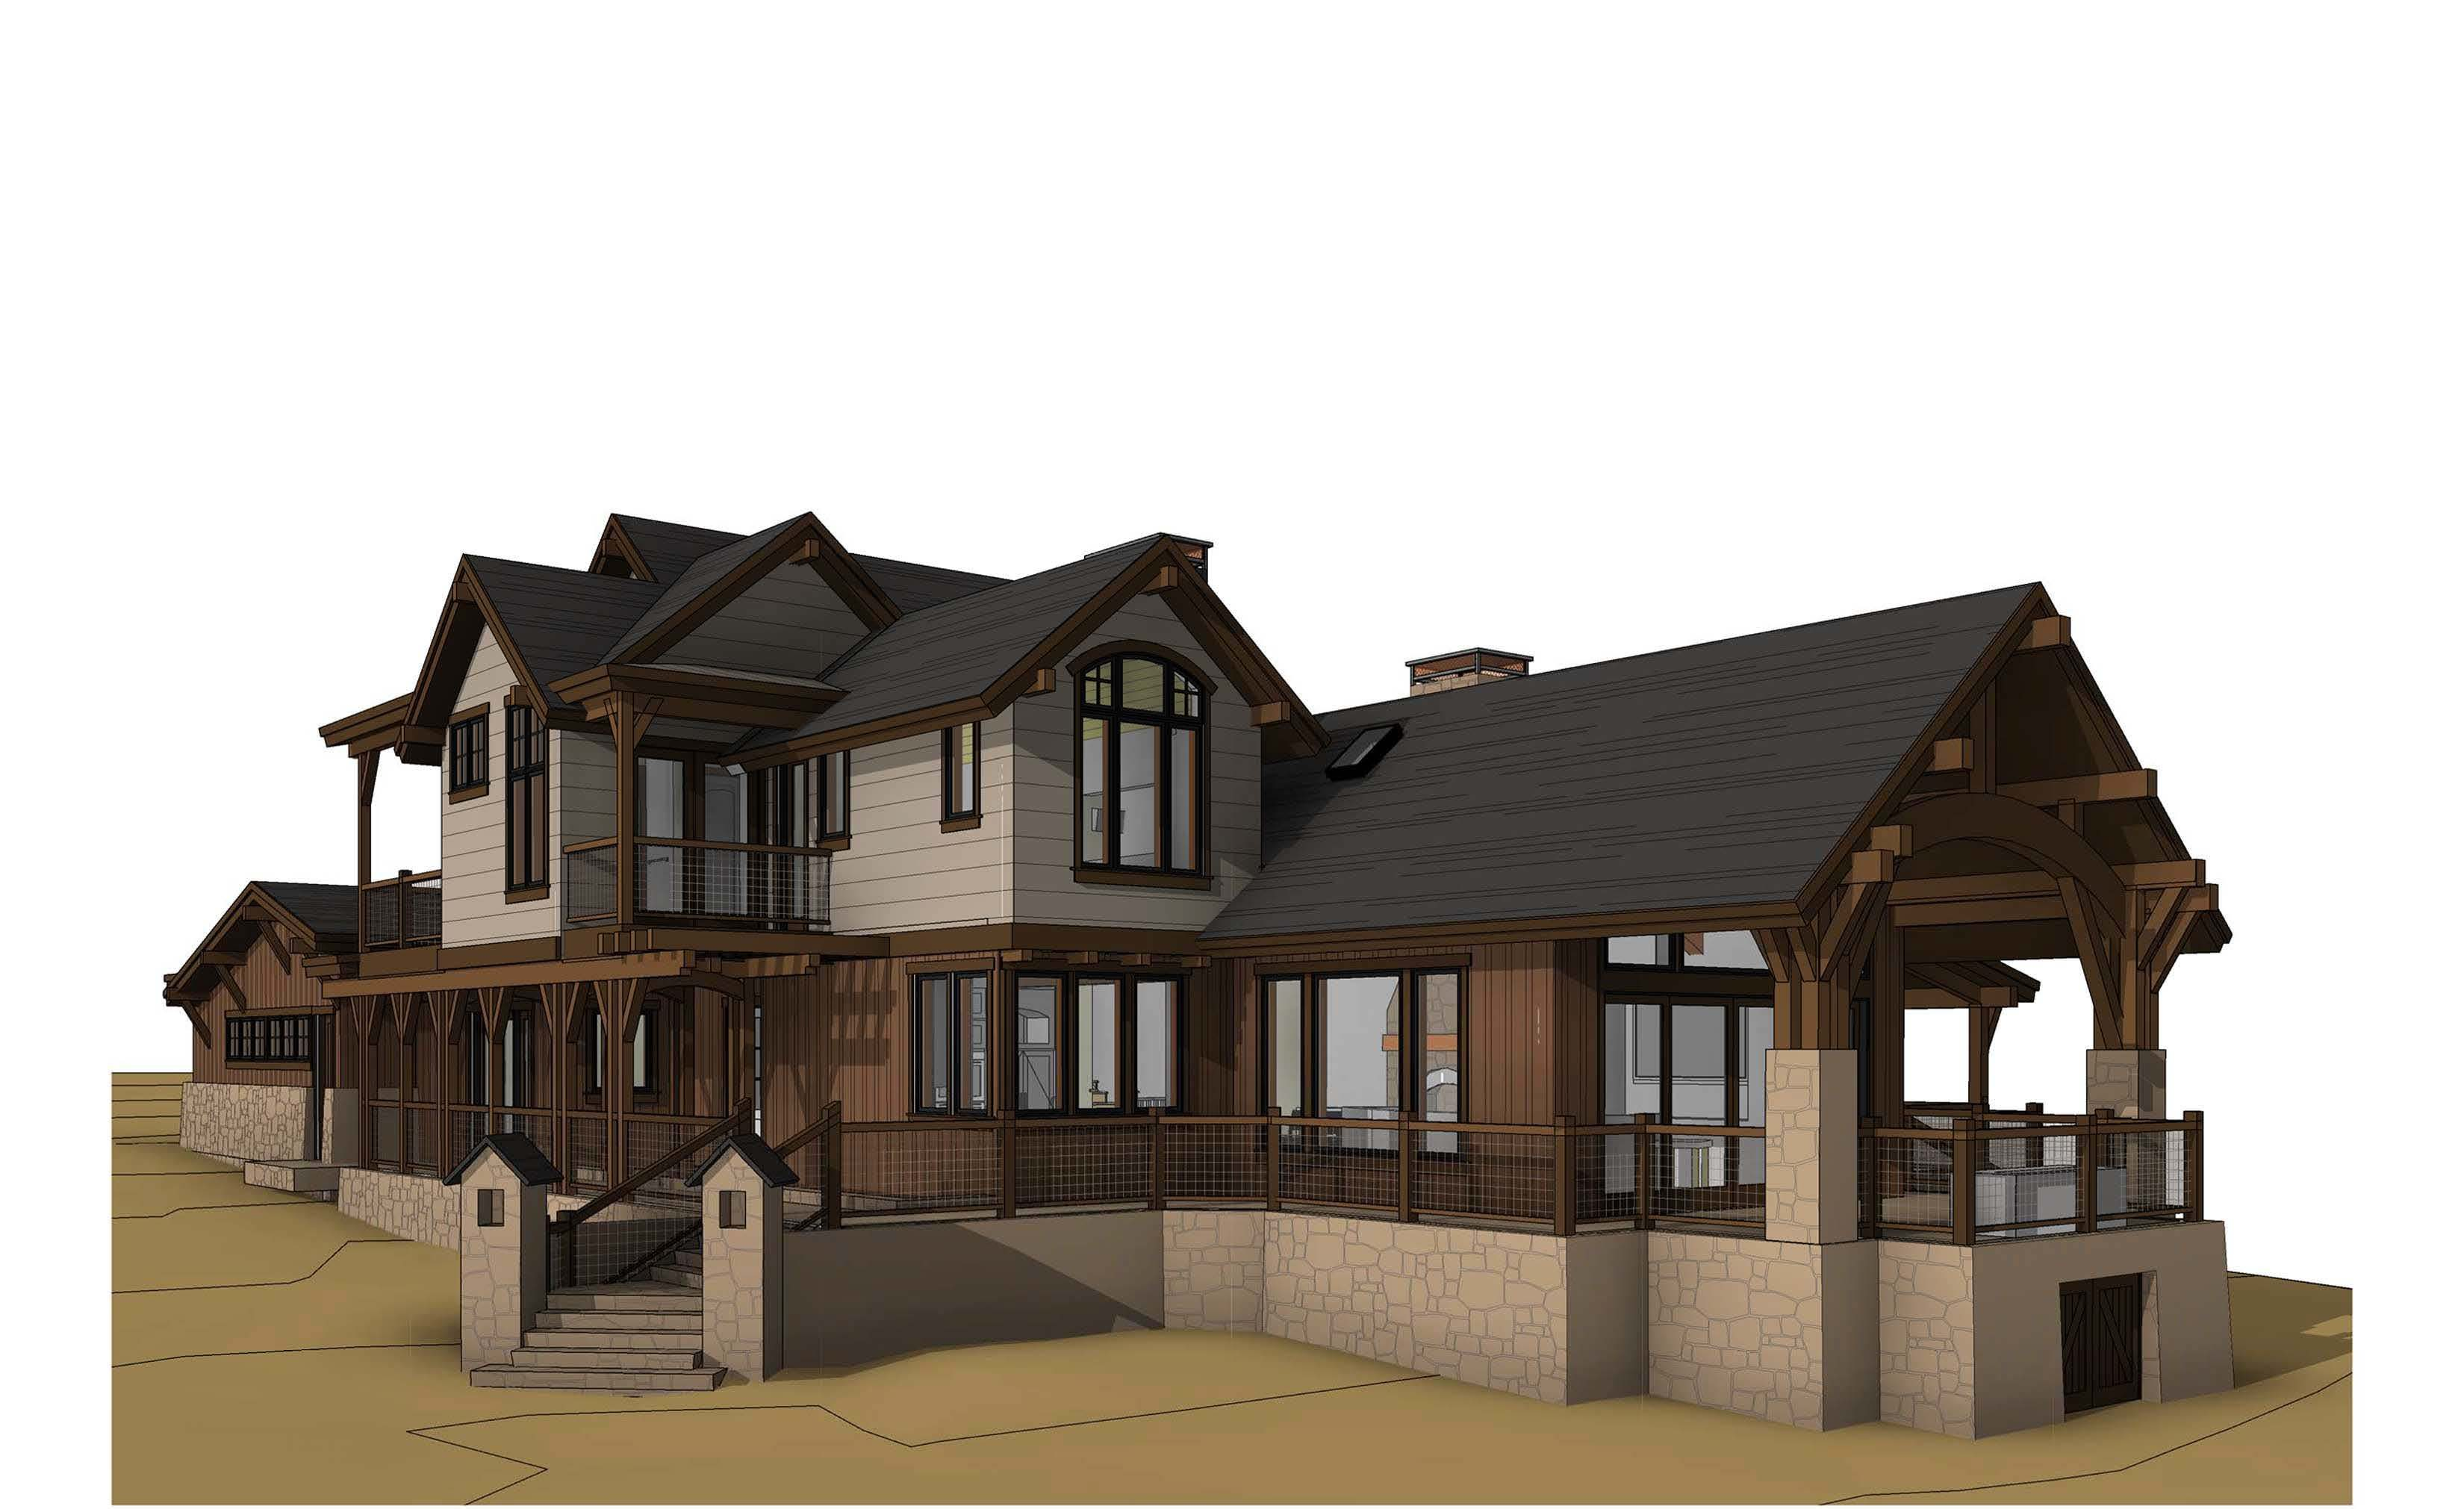 Zephyr Cove Residence Perspective2 8-5X11